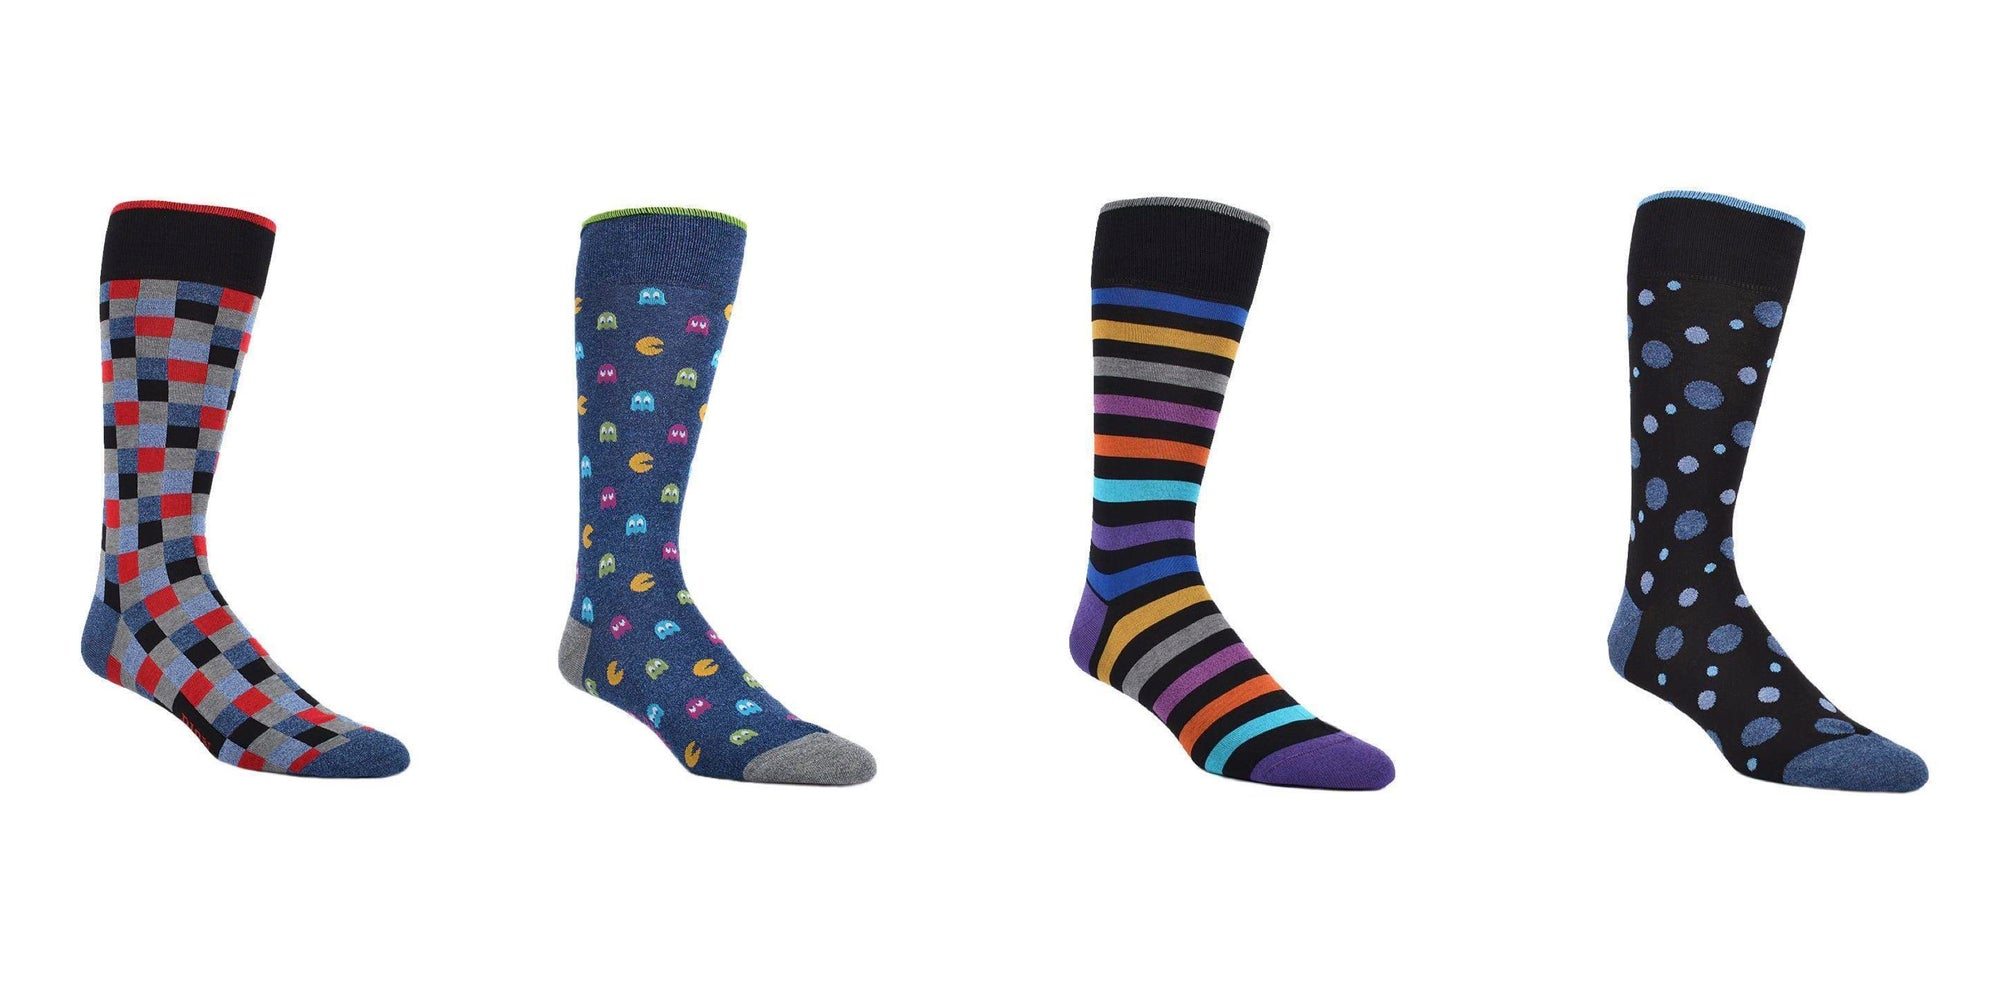 Classic Men's Dress Socks